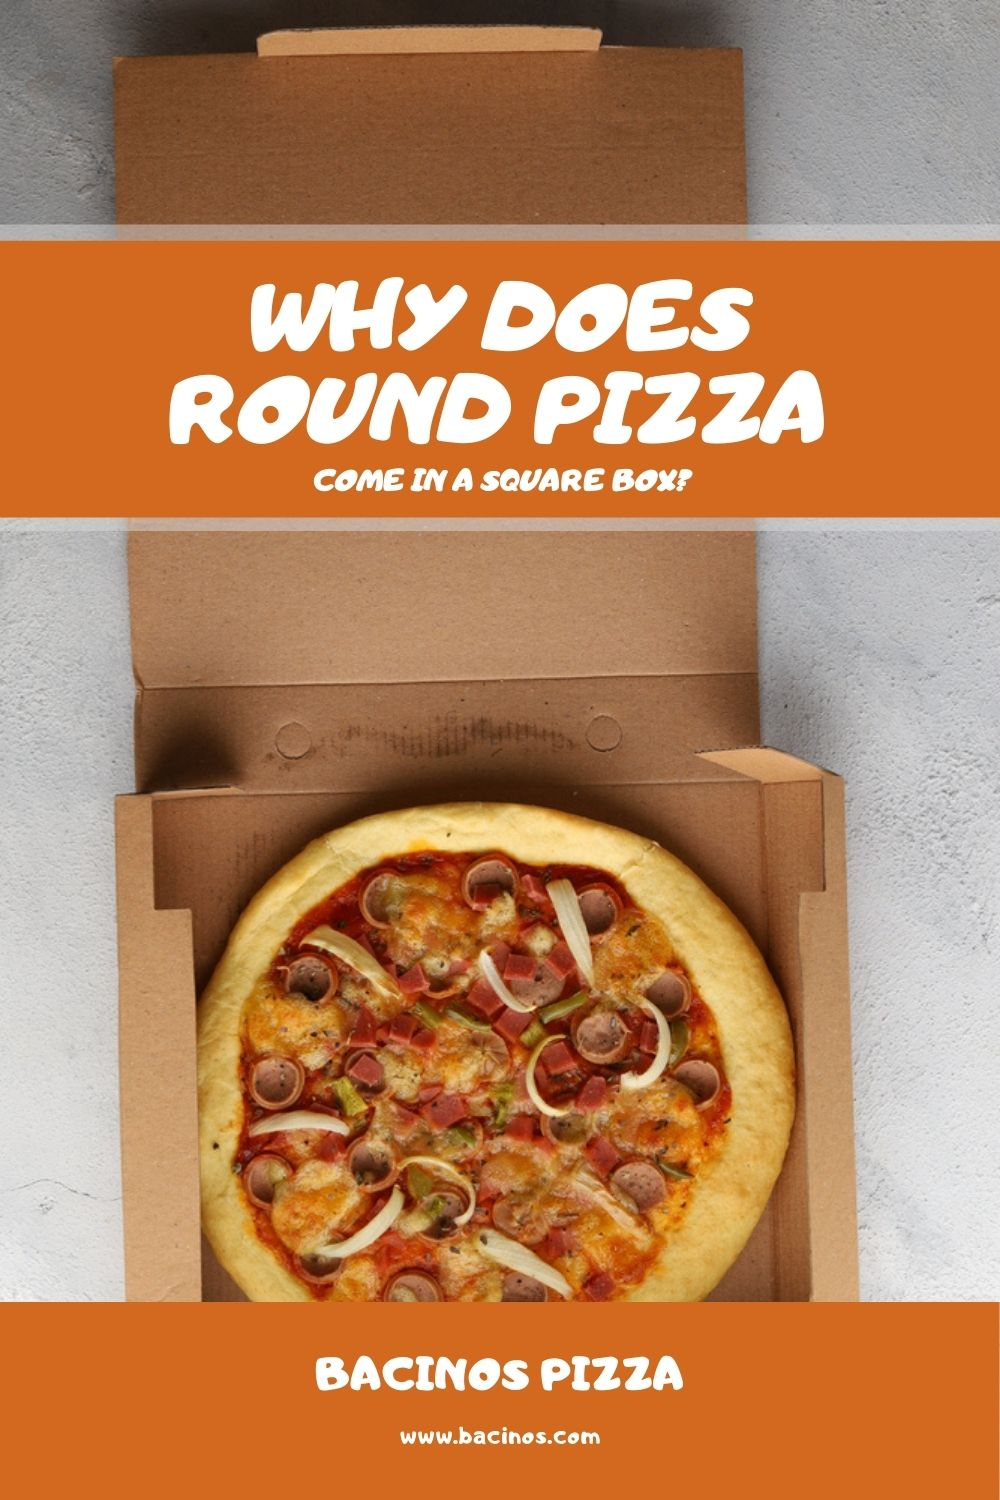 Why Does Round Pizza Come In A Square Box (Main Reasons) 2